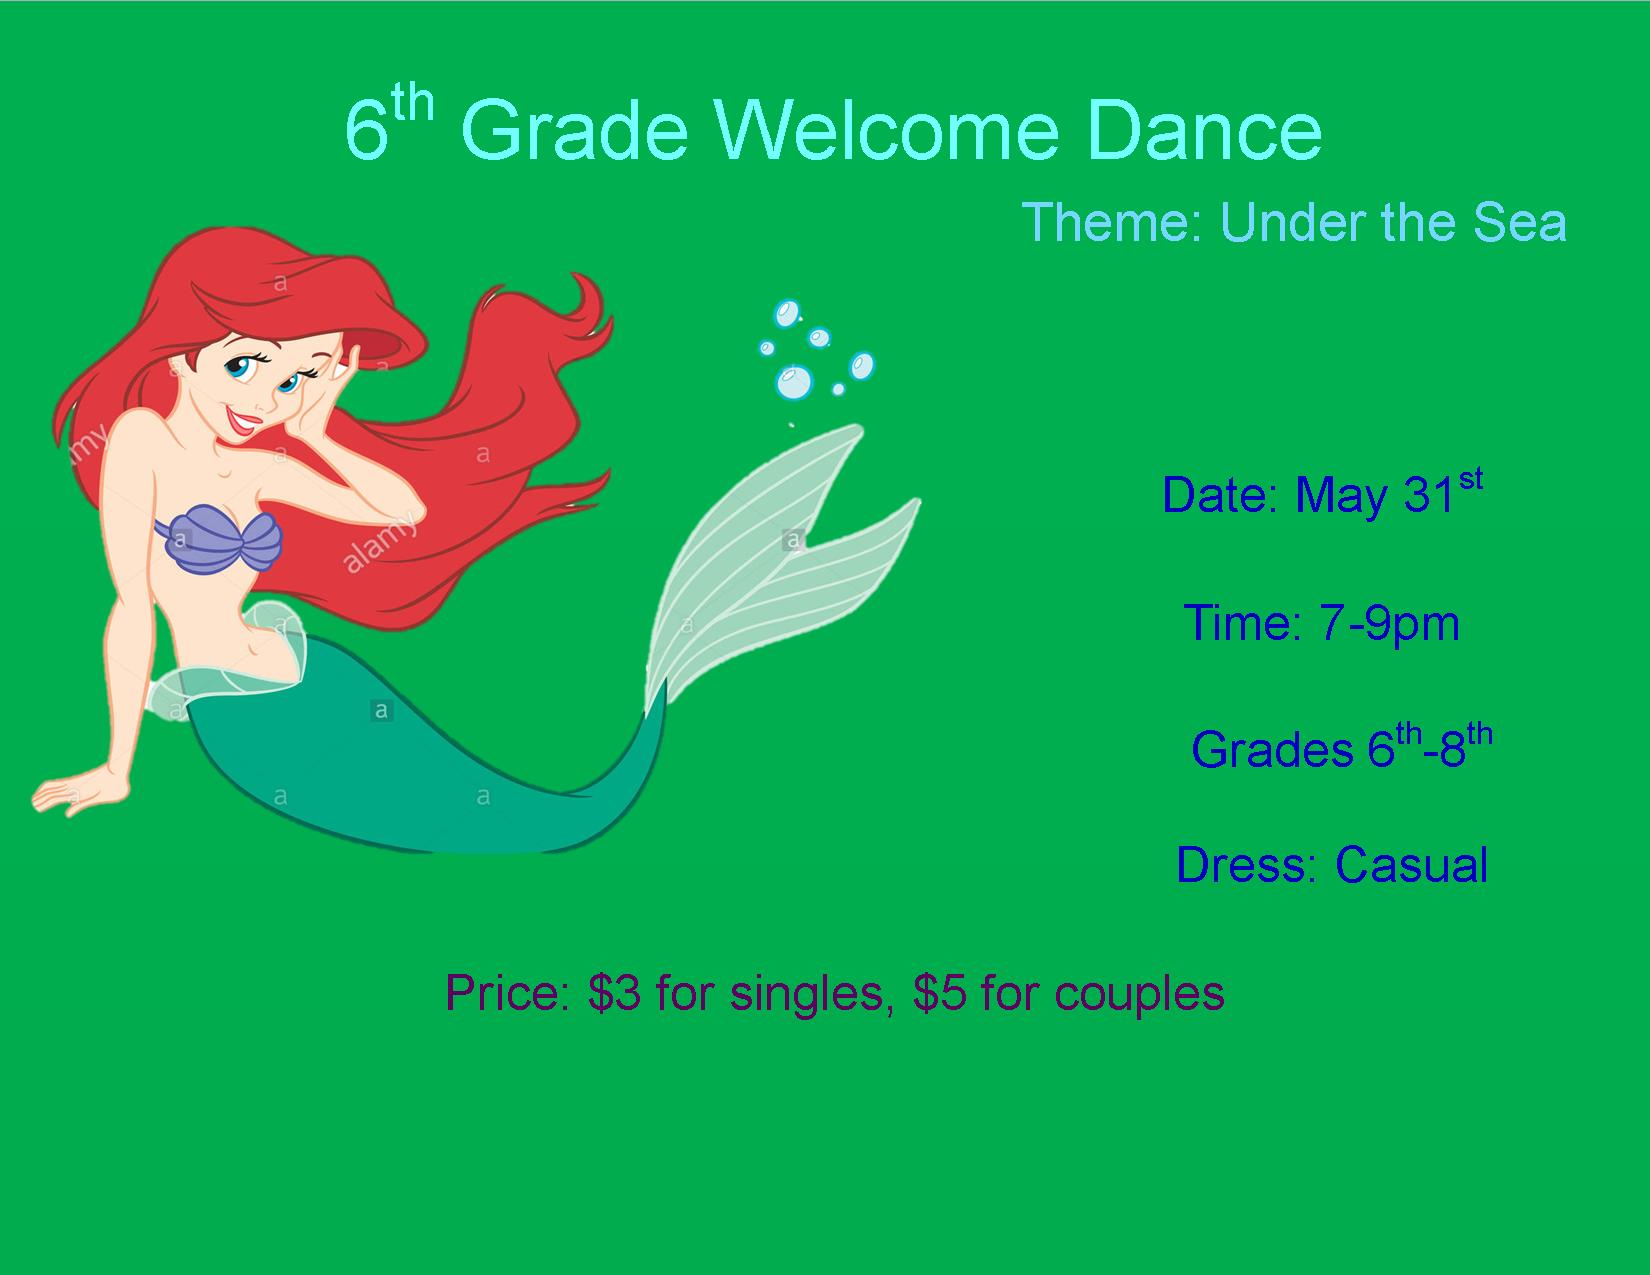 6th grade welcome dance